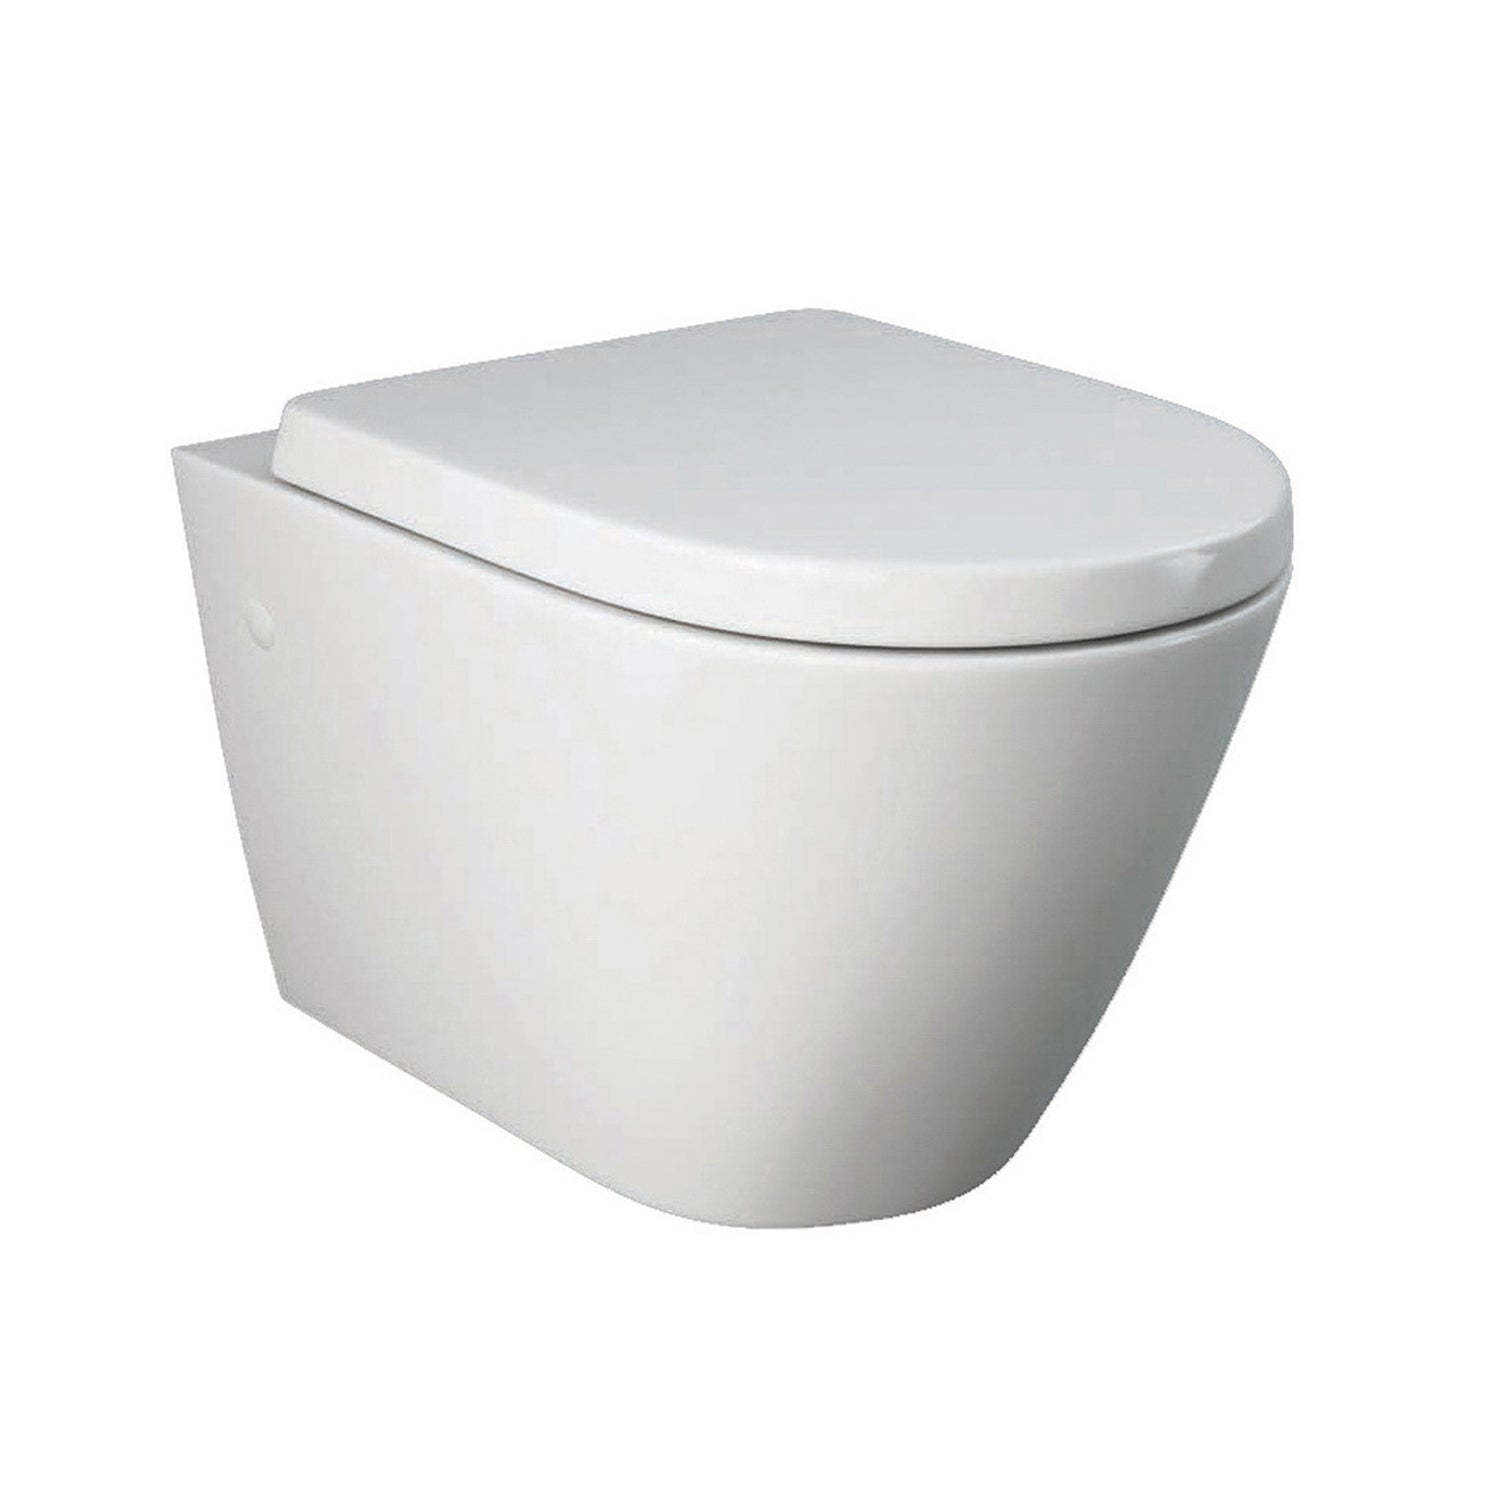 520mm Vesta Wall Hung Toilet with a seat and cover on a white background